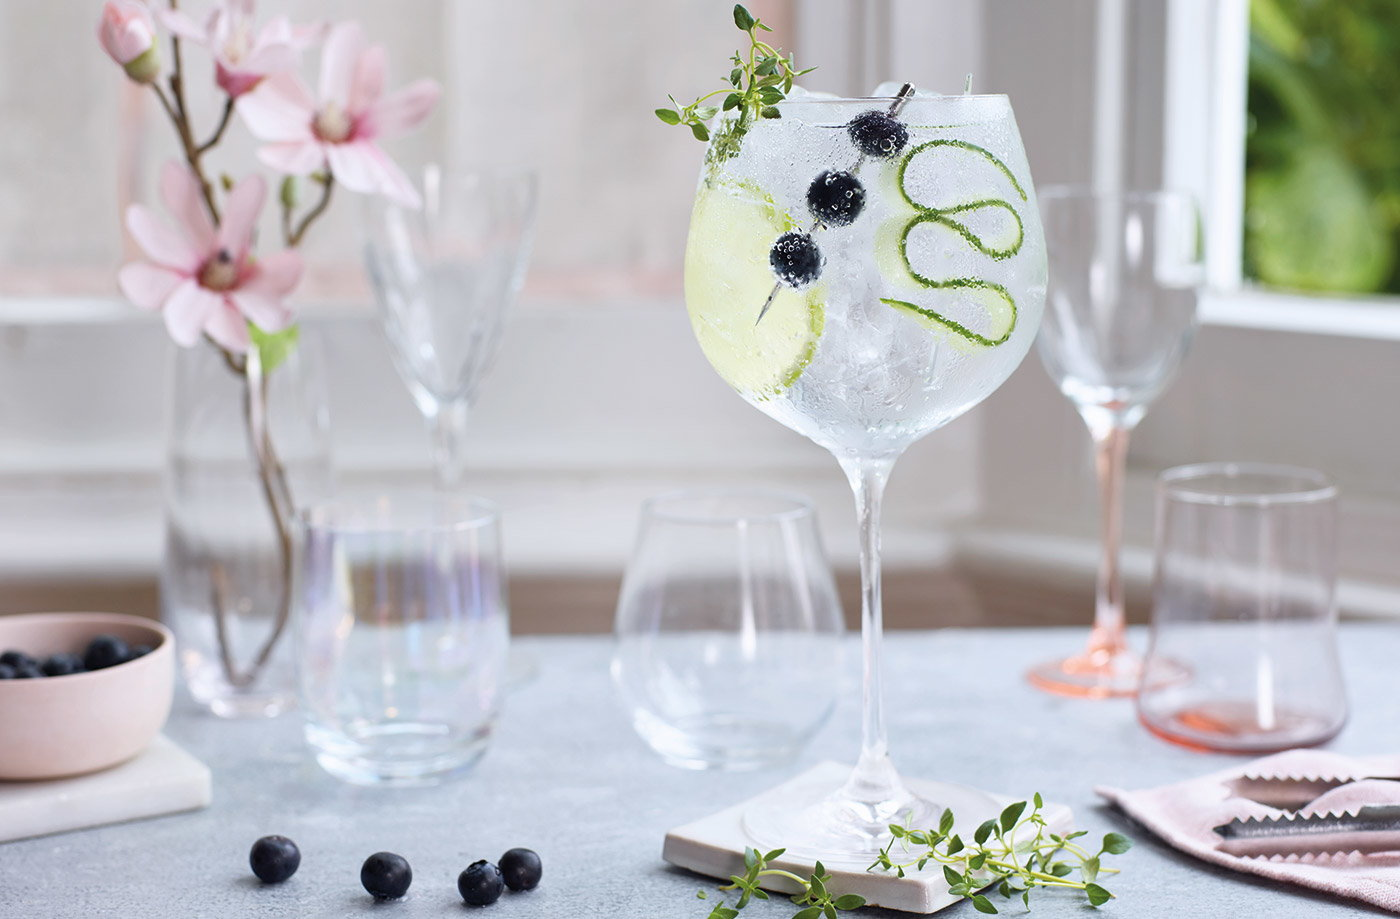 Sparkling gin cocktail recipe